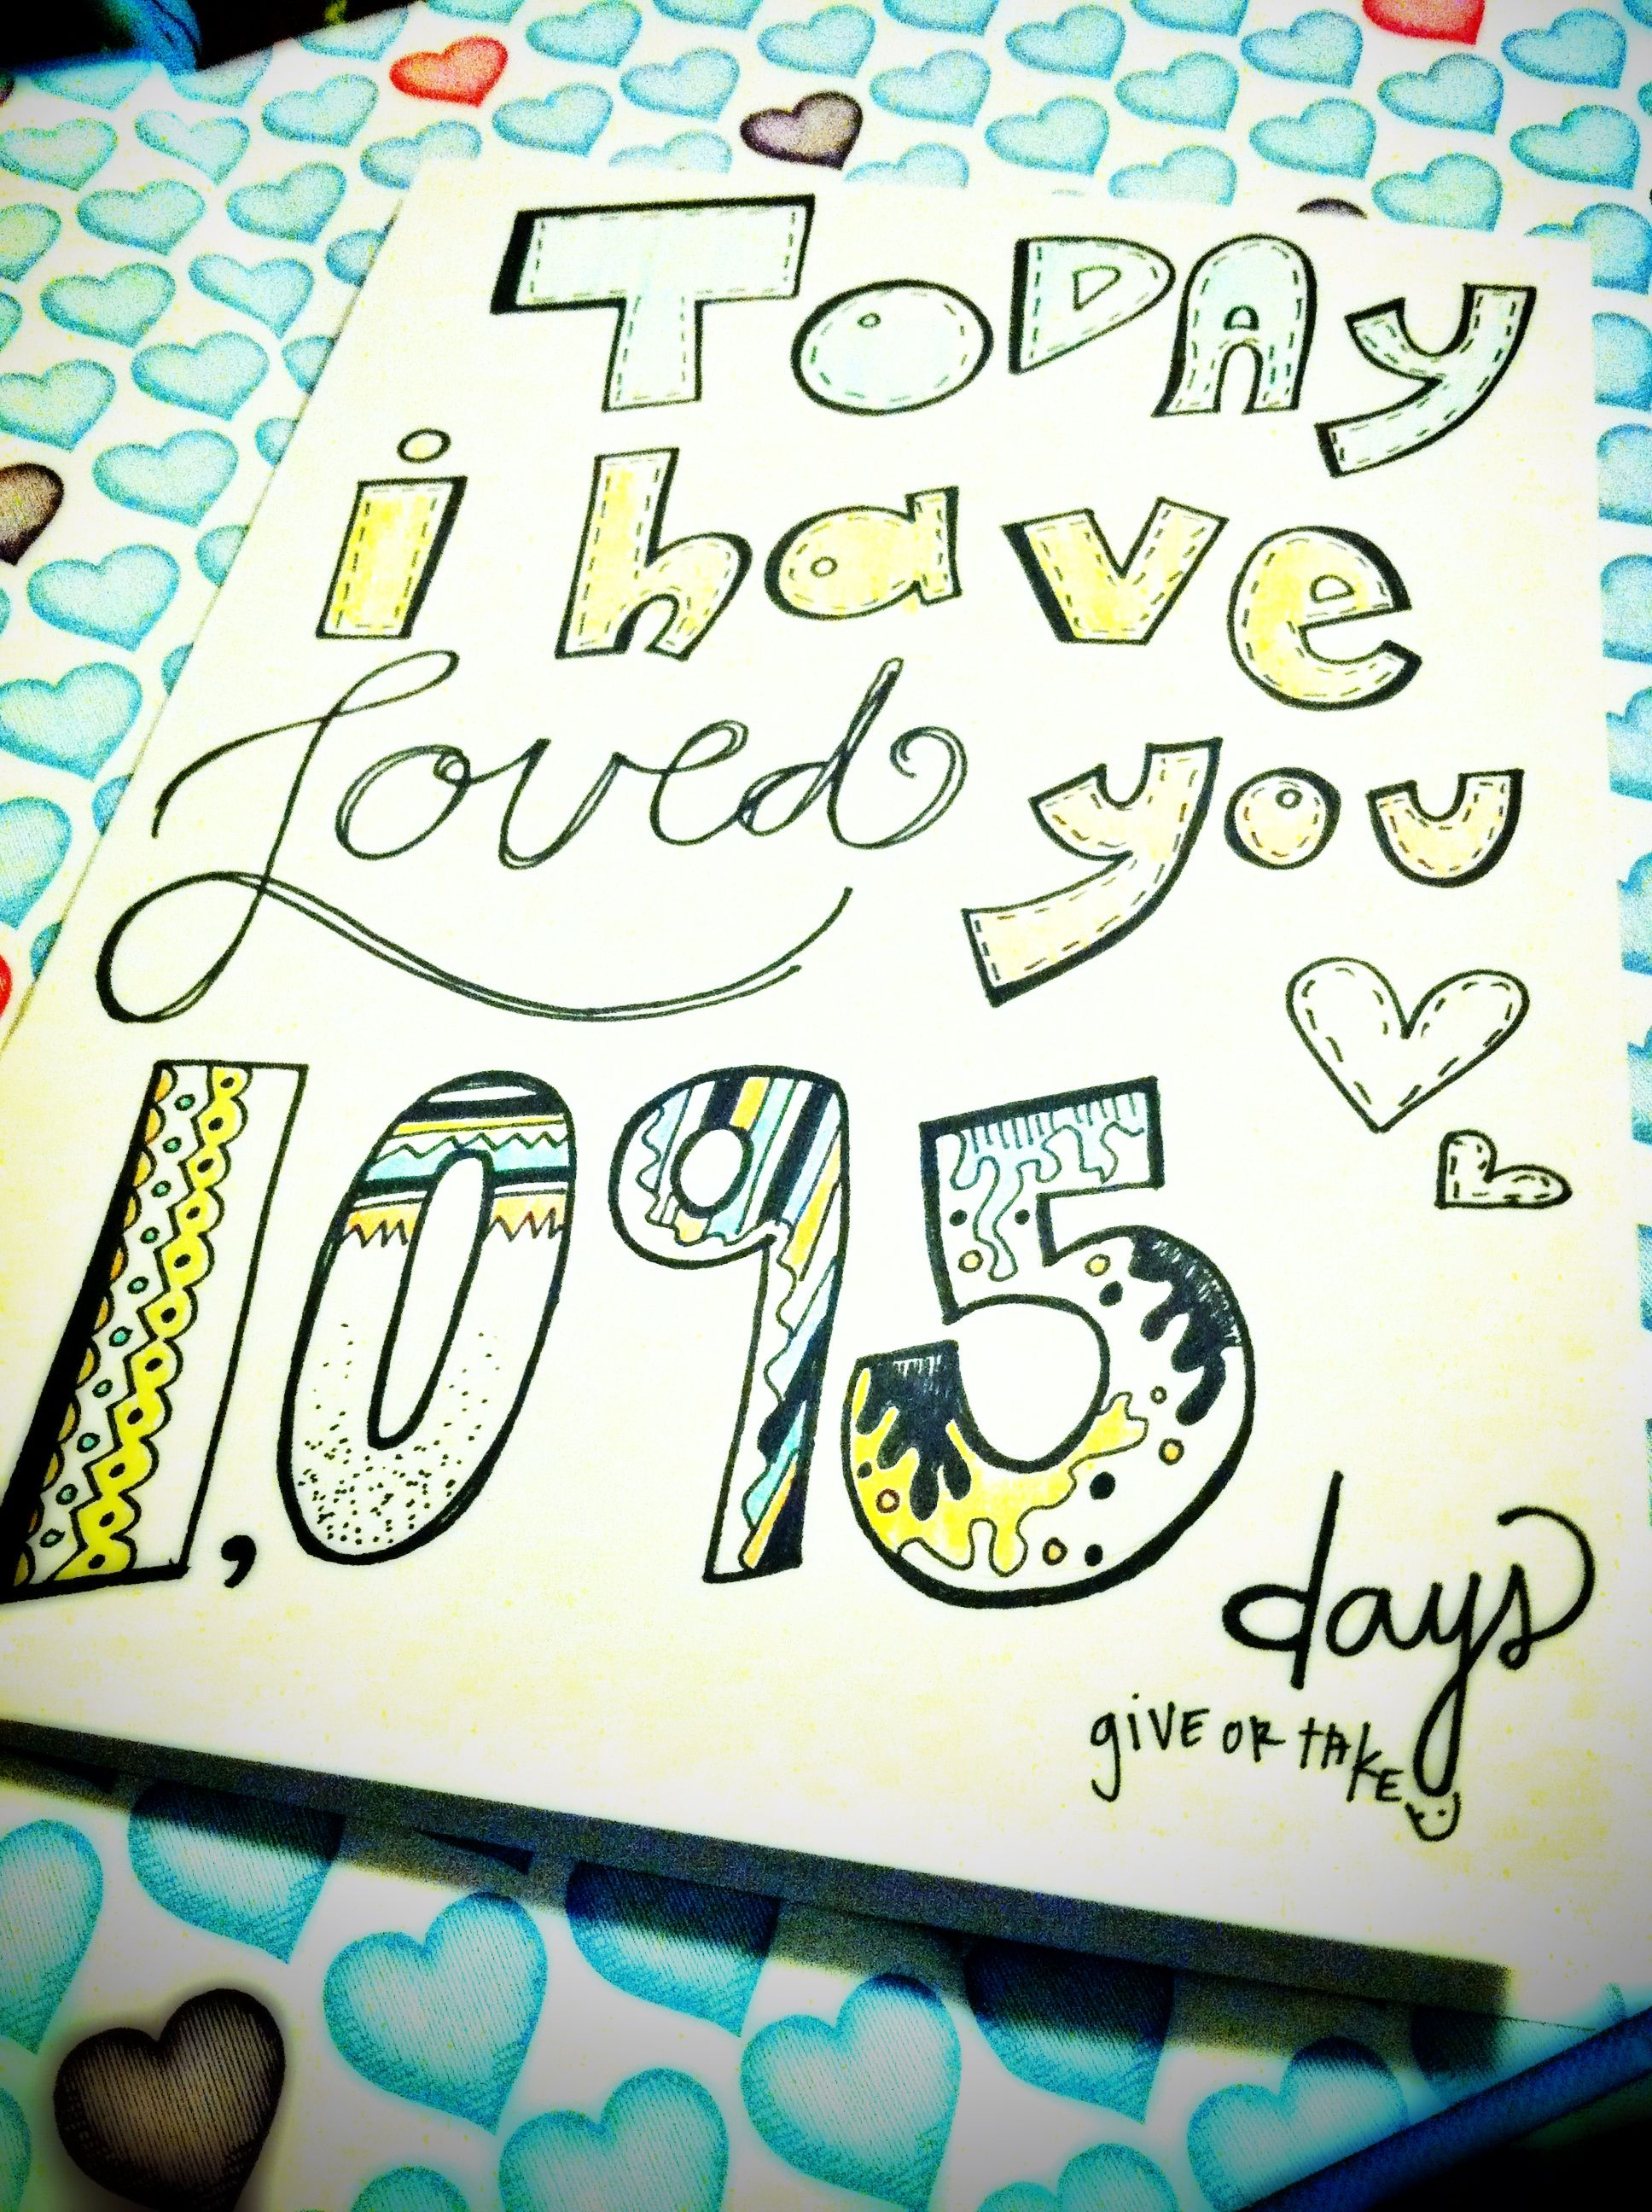 On 11 05 13 Of The Day We Met Our Number Will Be 1 883 Days